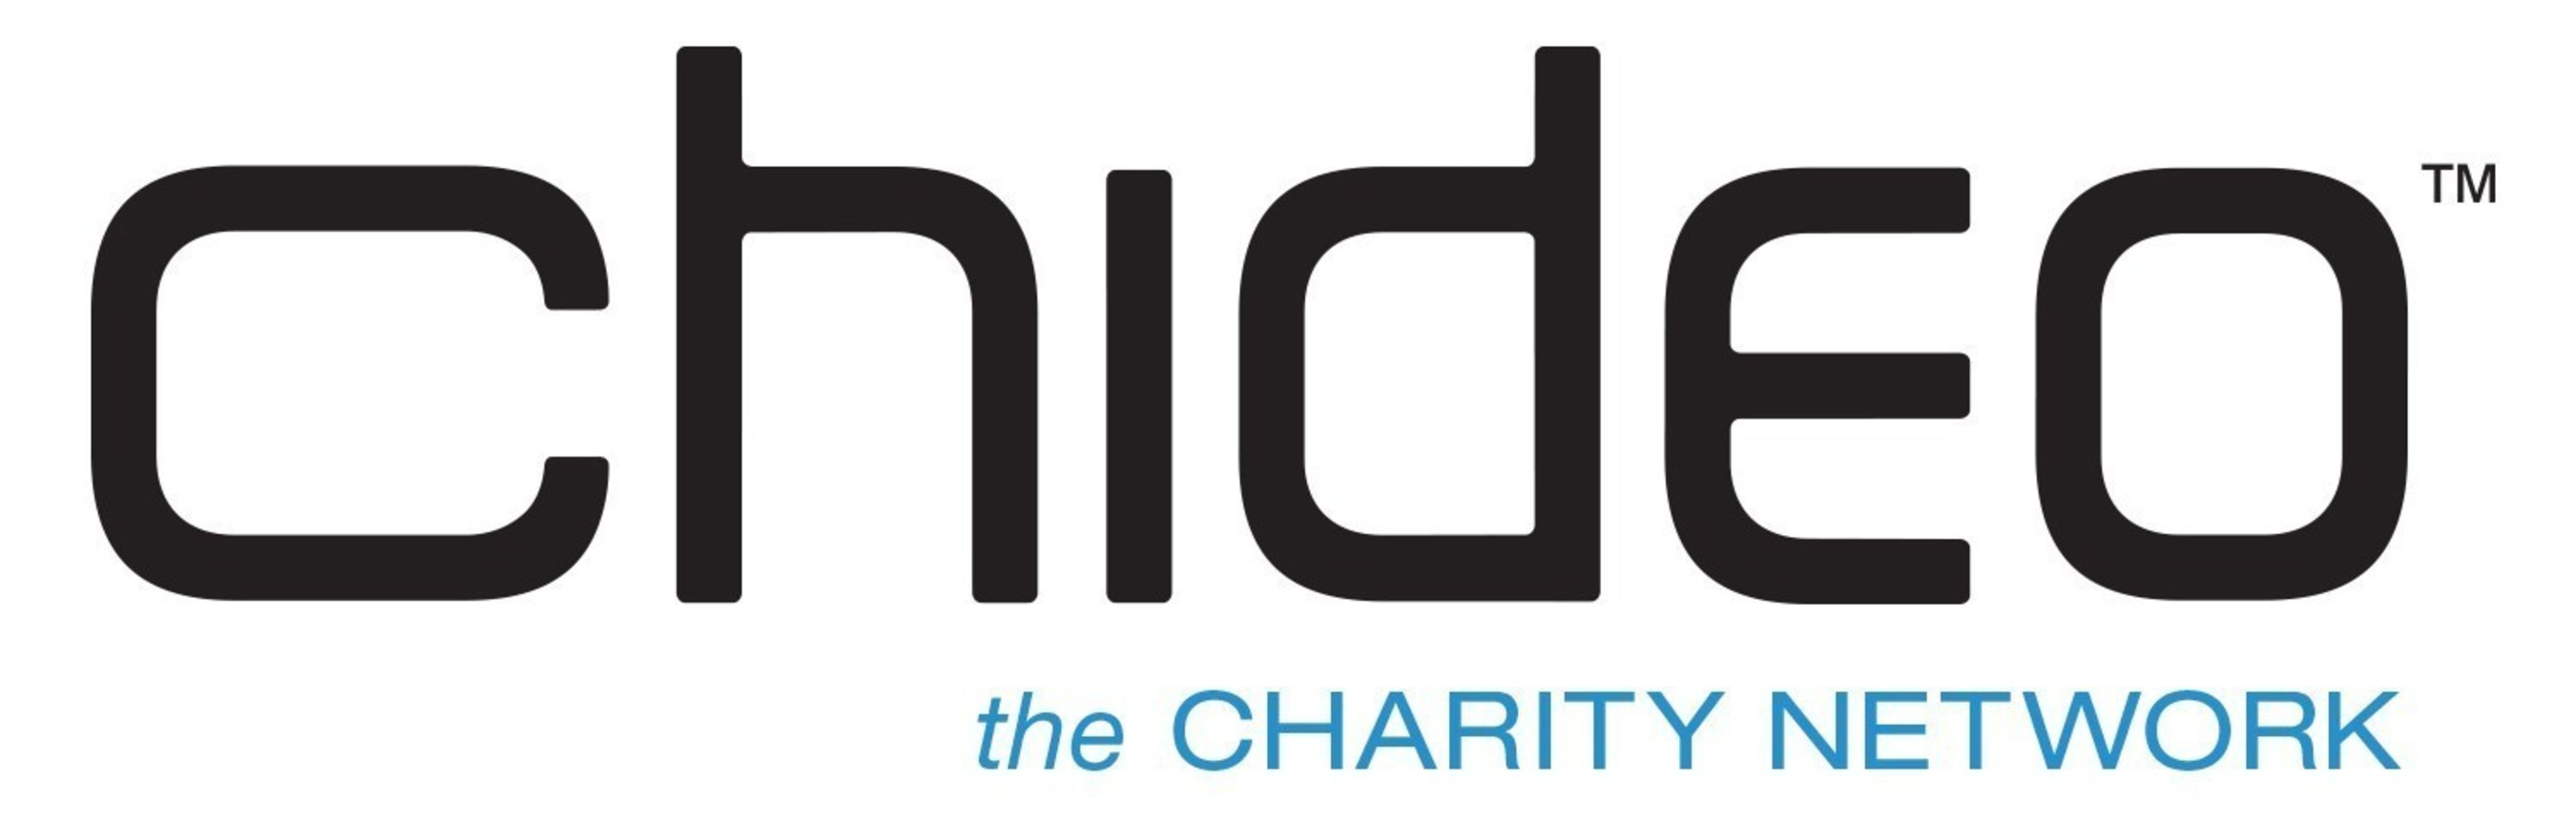 Chideo, the Charity Network, where fans can connect with their favorite celebrities in the spirit of driving awareness and raising money. Go to Chideo.com for more information